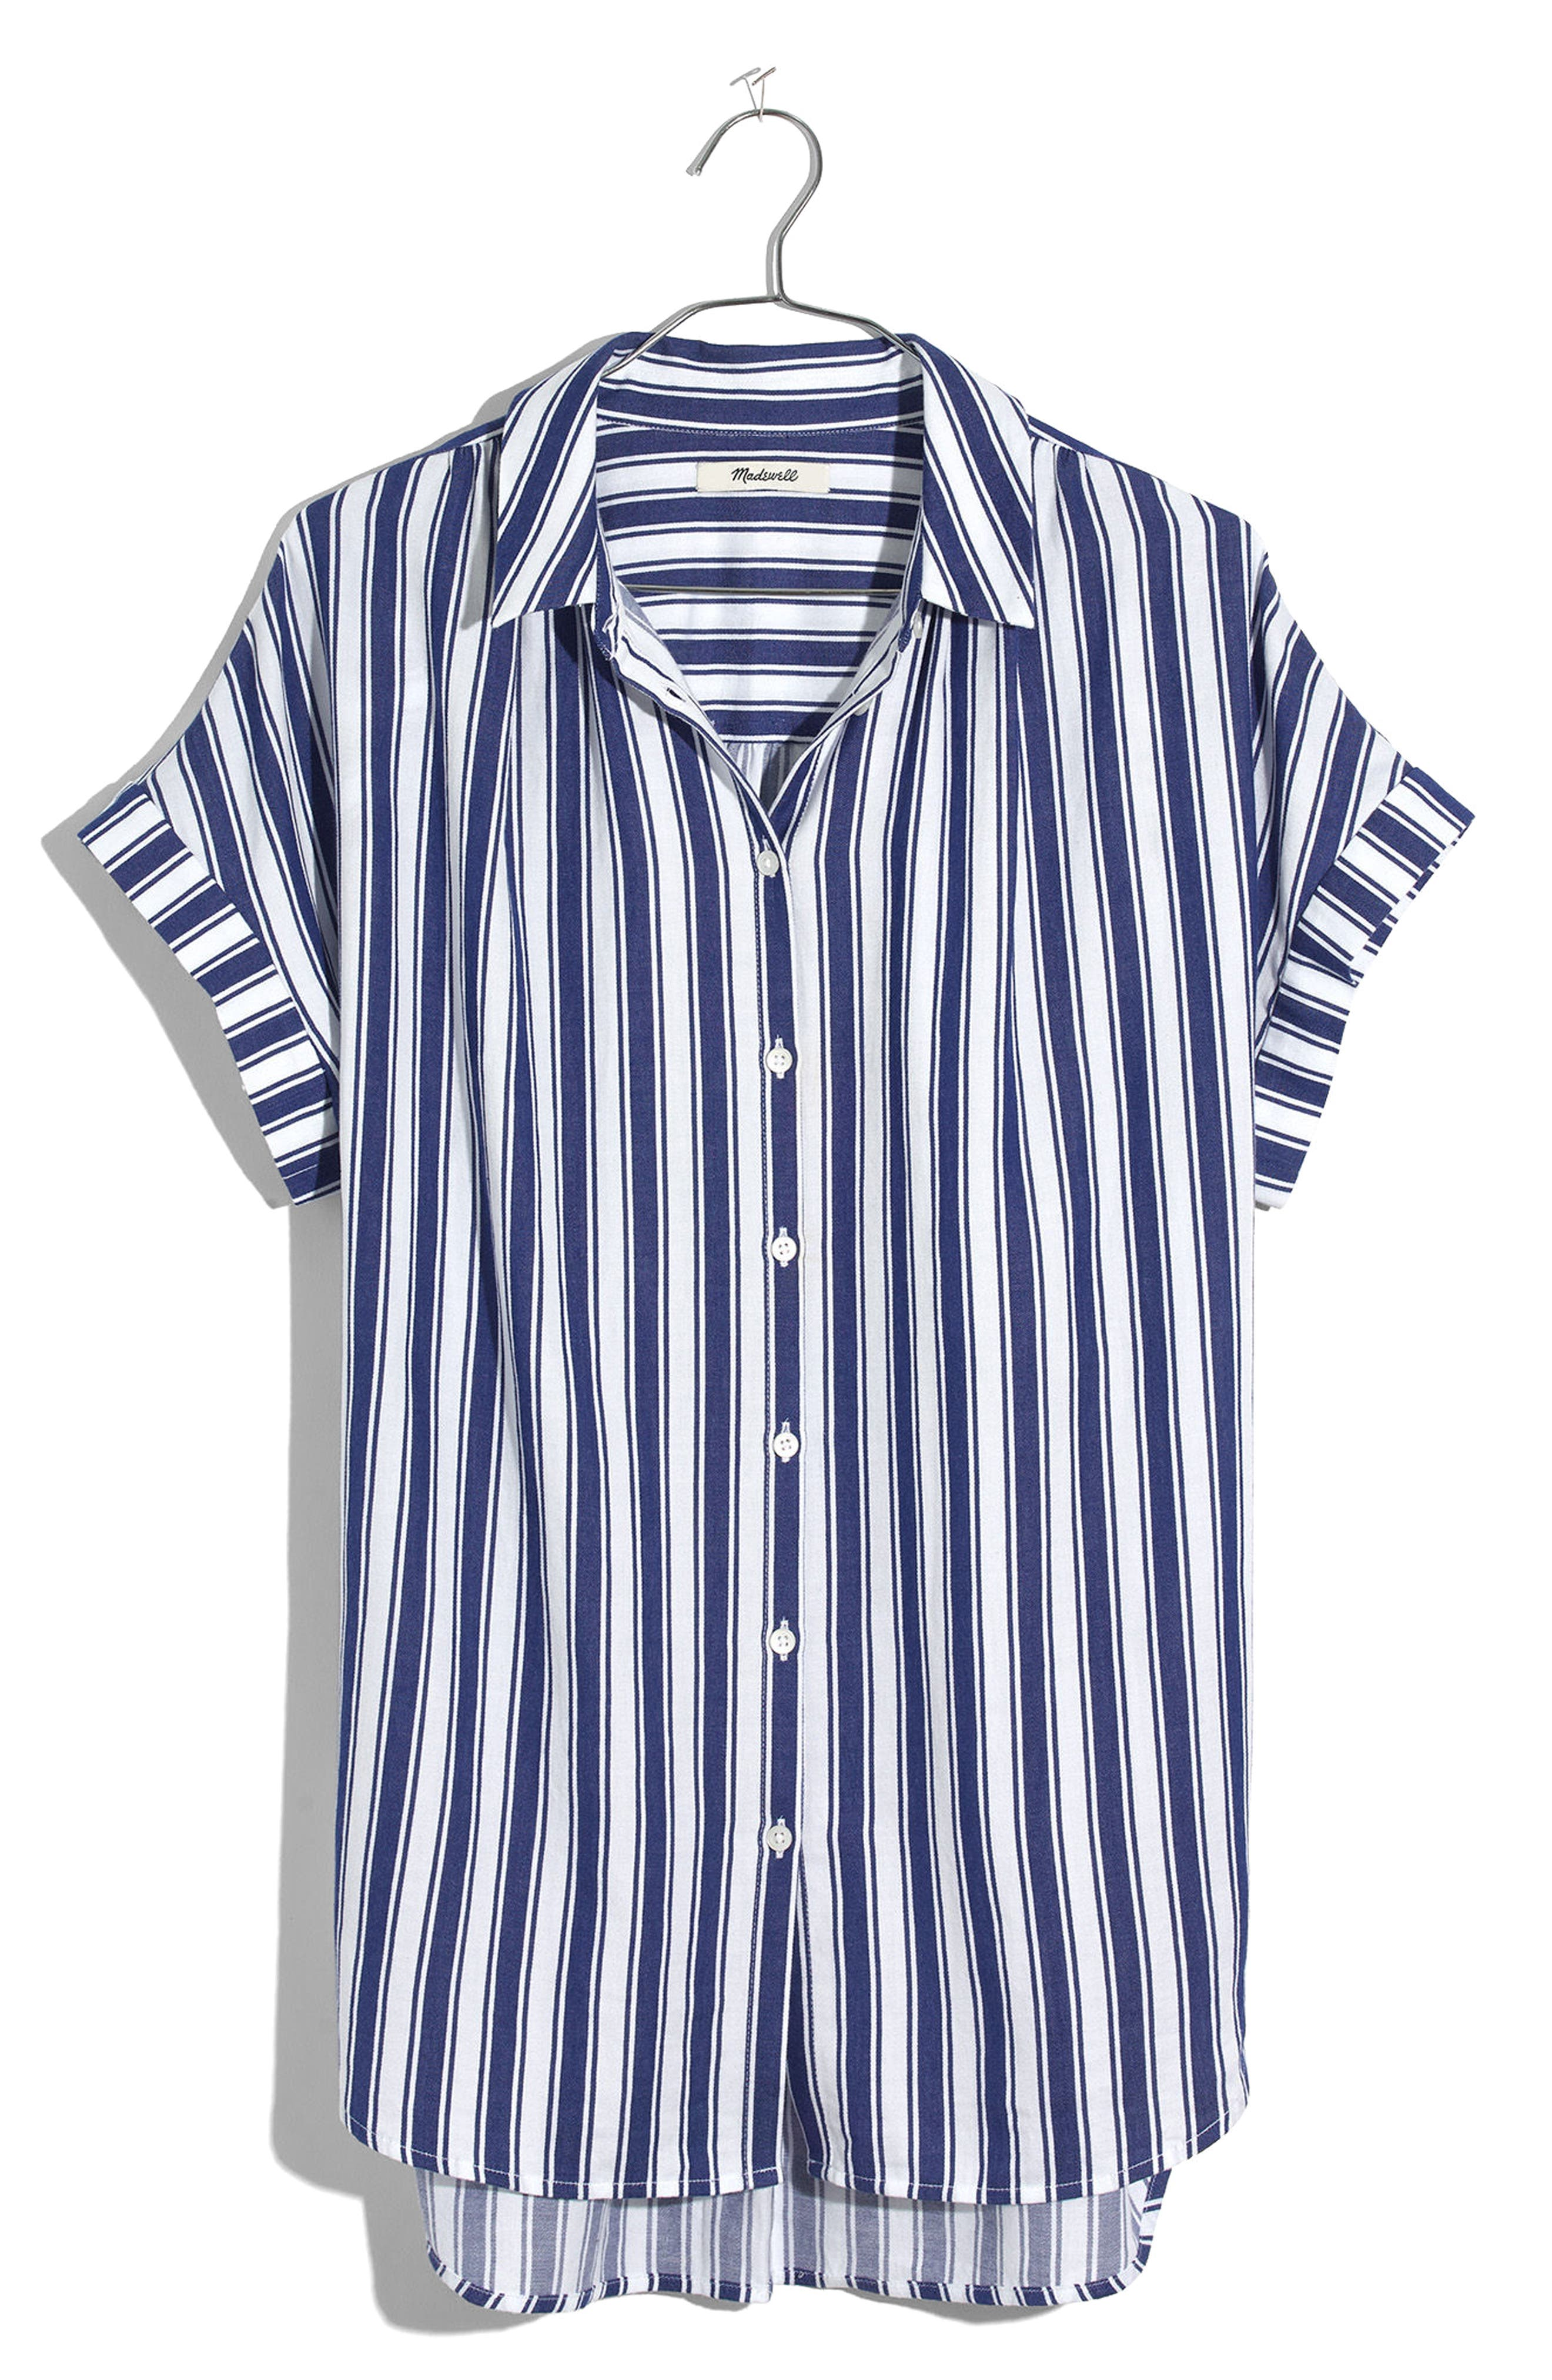 Stripe Central Shirt,                         Main,                         color, Oxford Blue